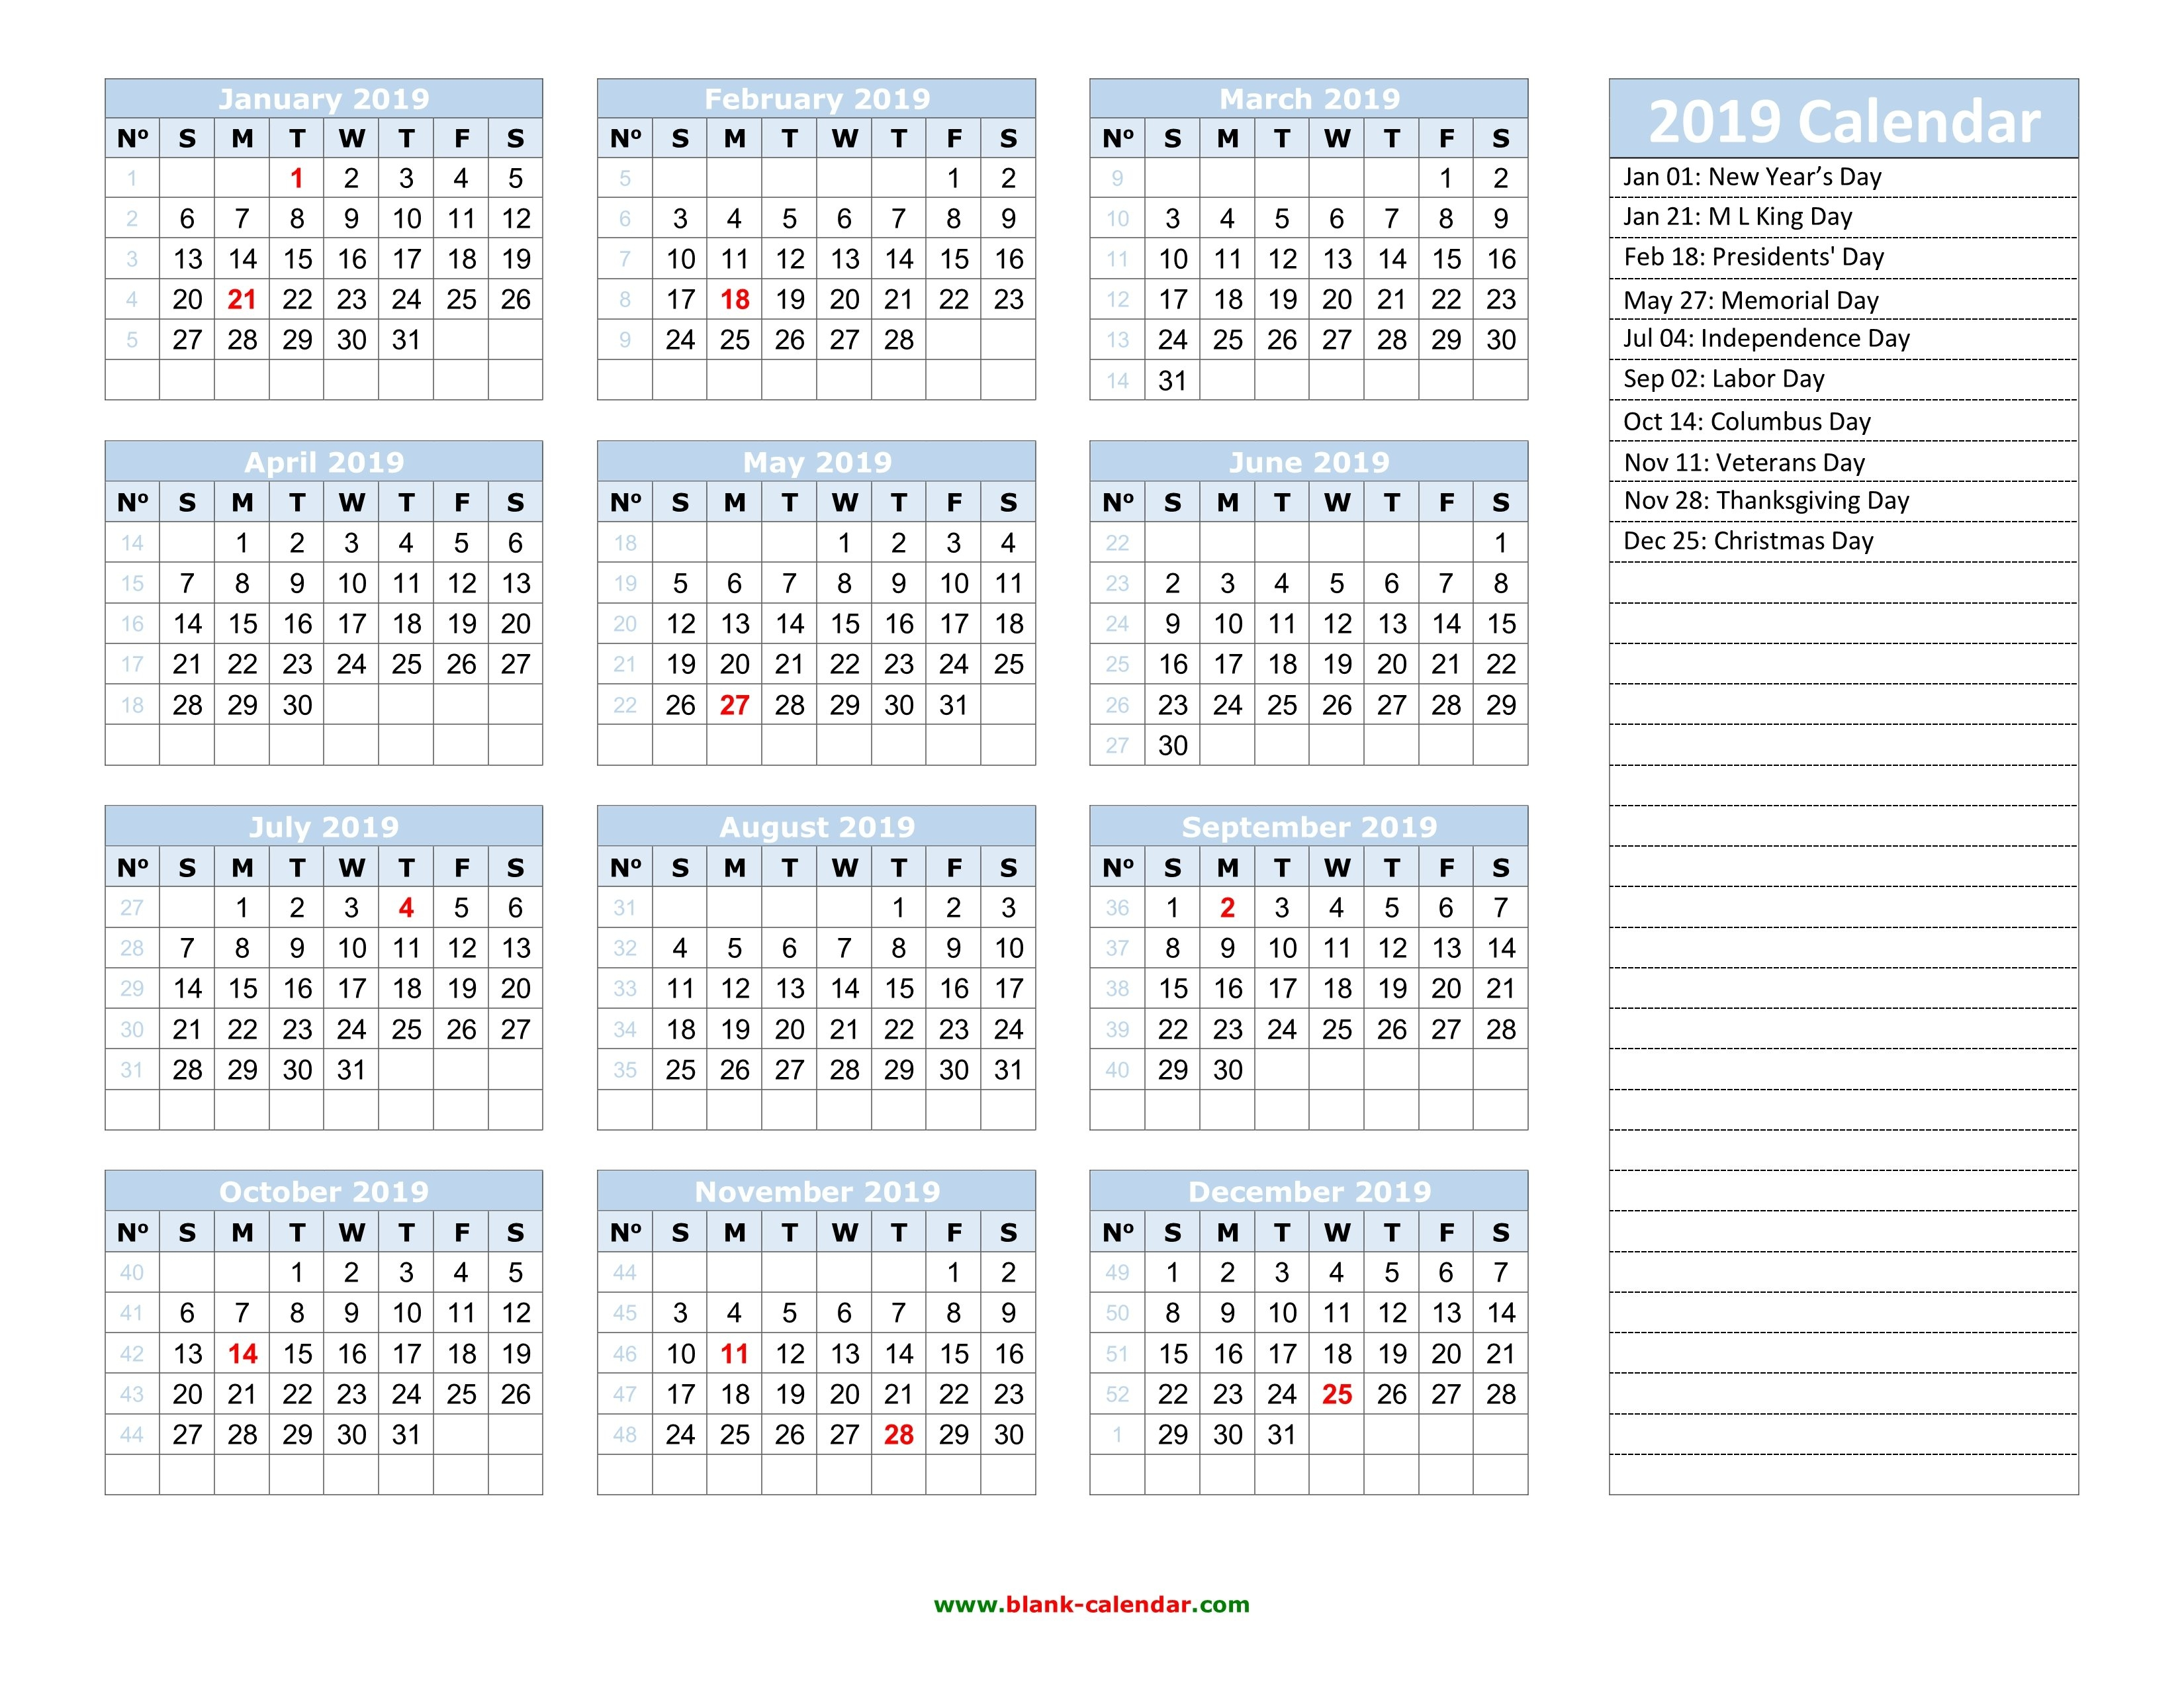 Yearly Calendar 2019 | Free Download And Print Calendar Week 50 2019